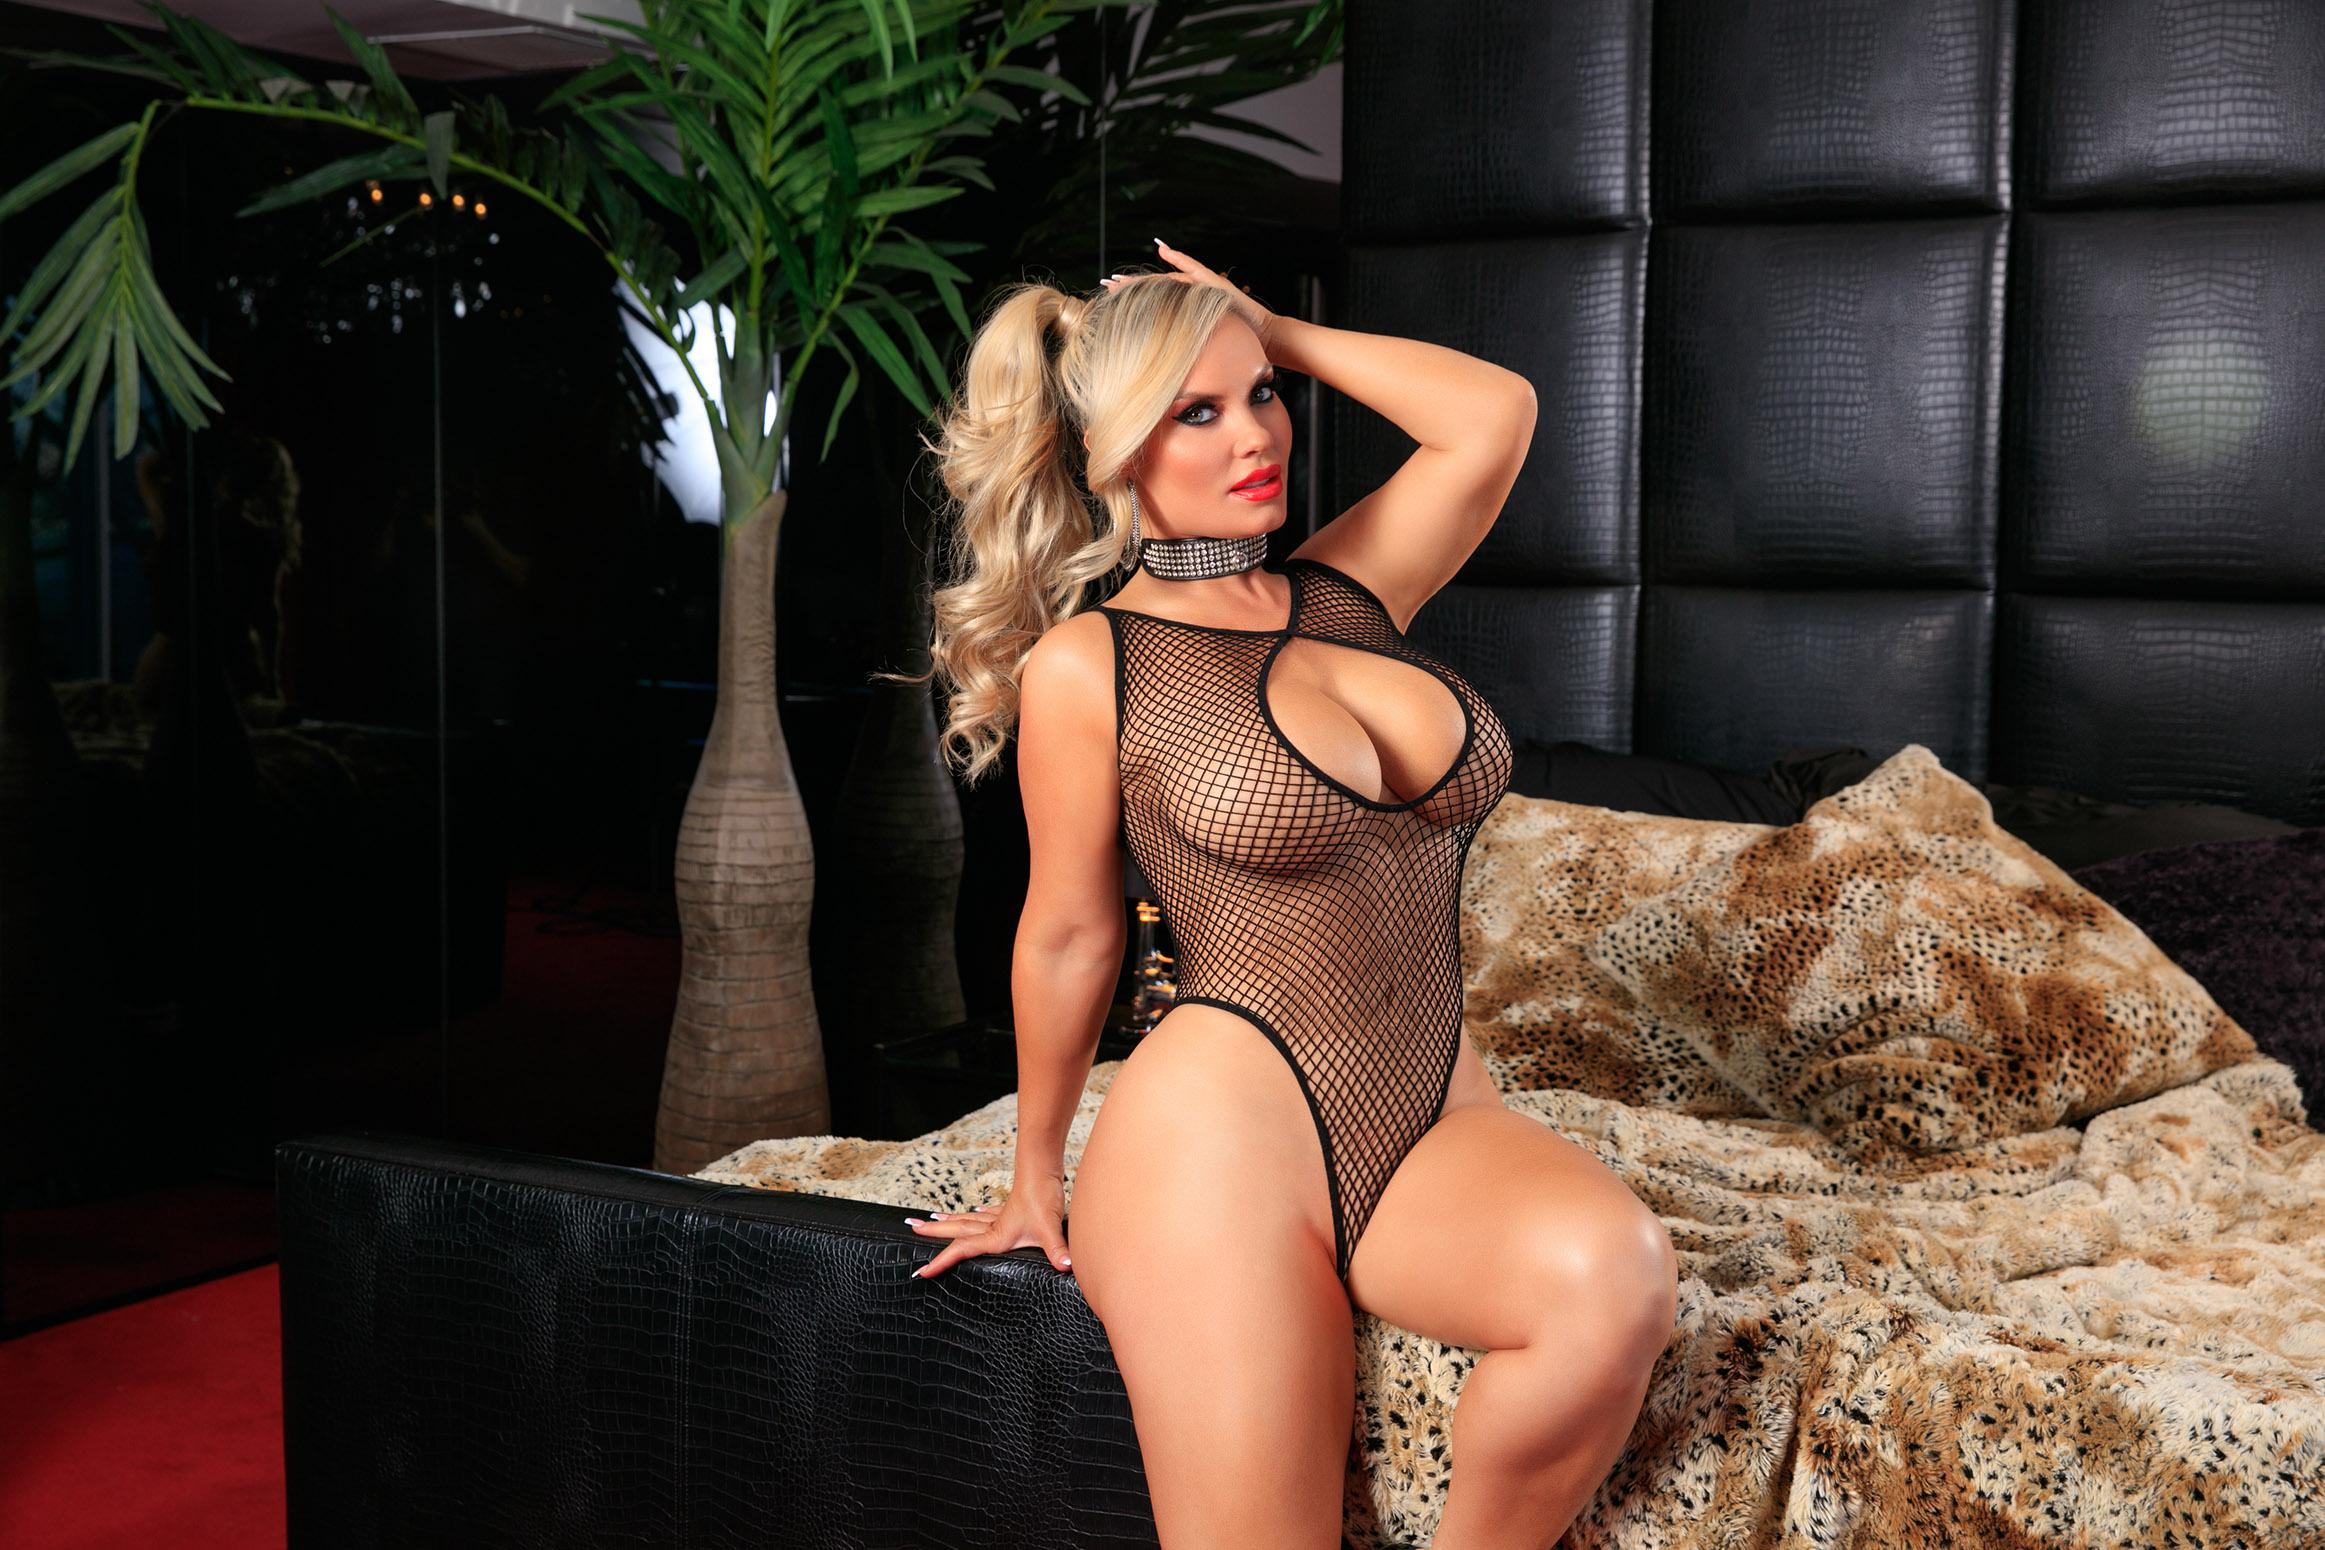 Coco austin ass up face down